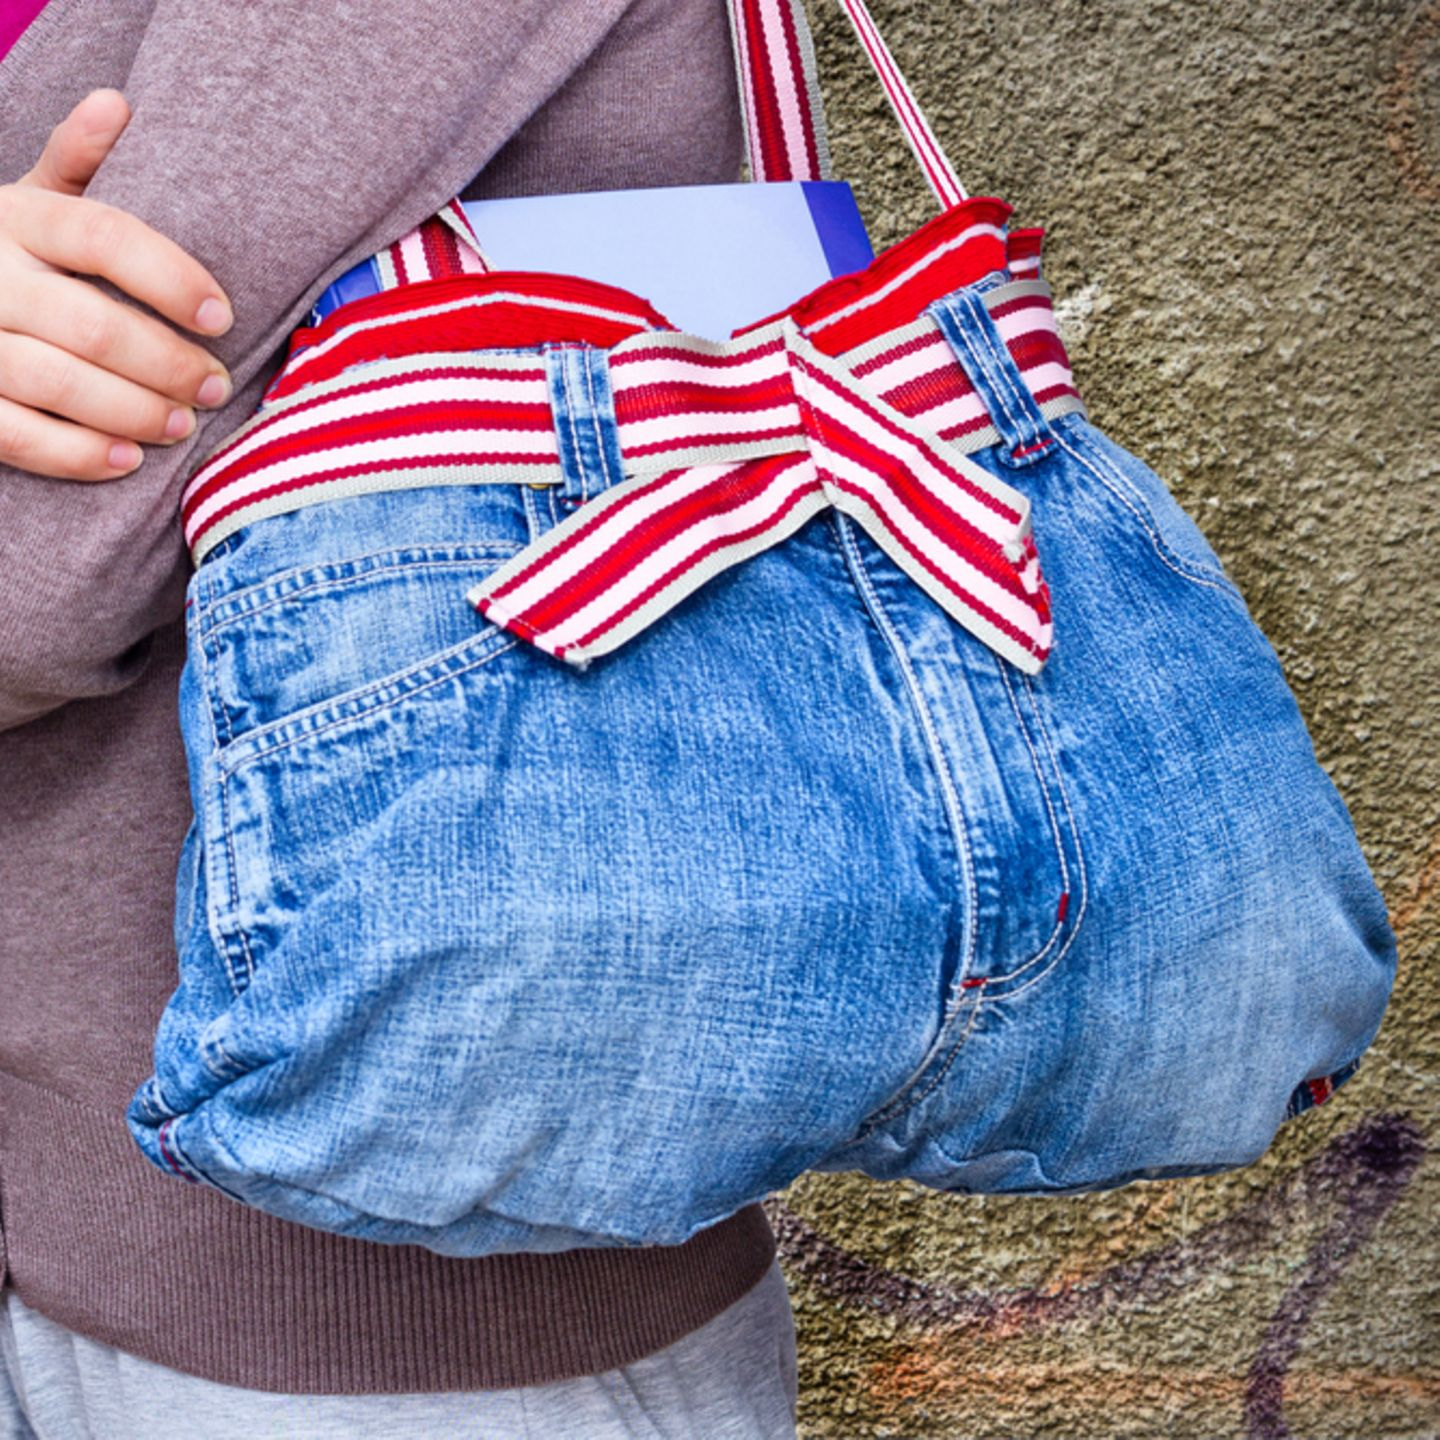 Upcycling: Tasche aus alter Jeans